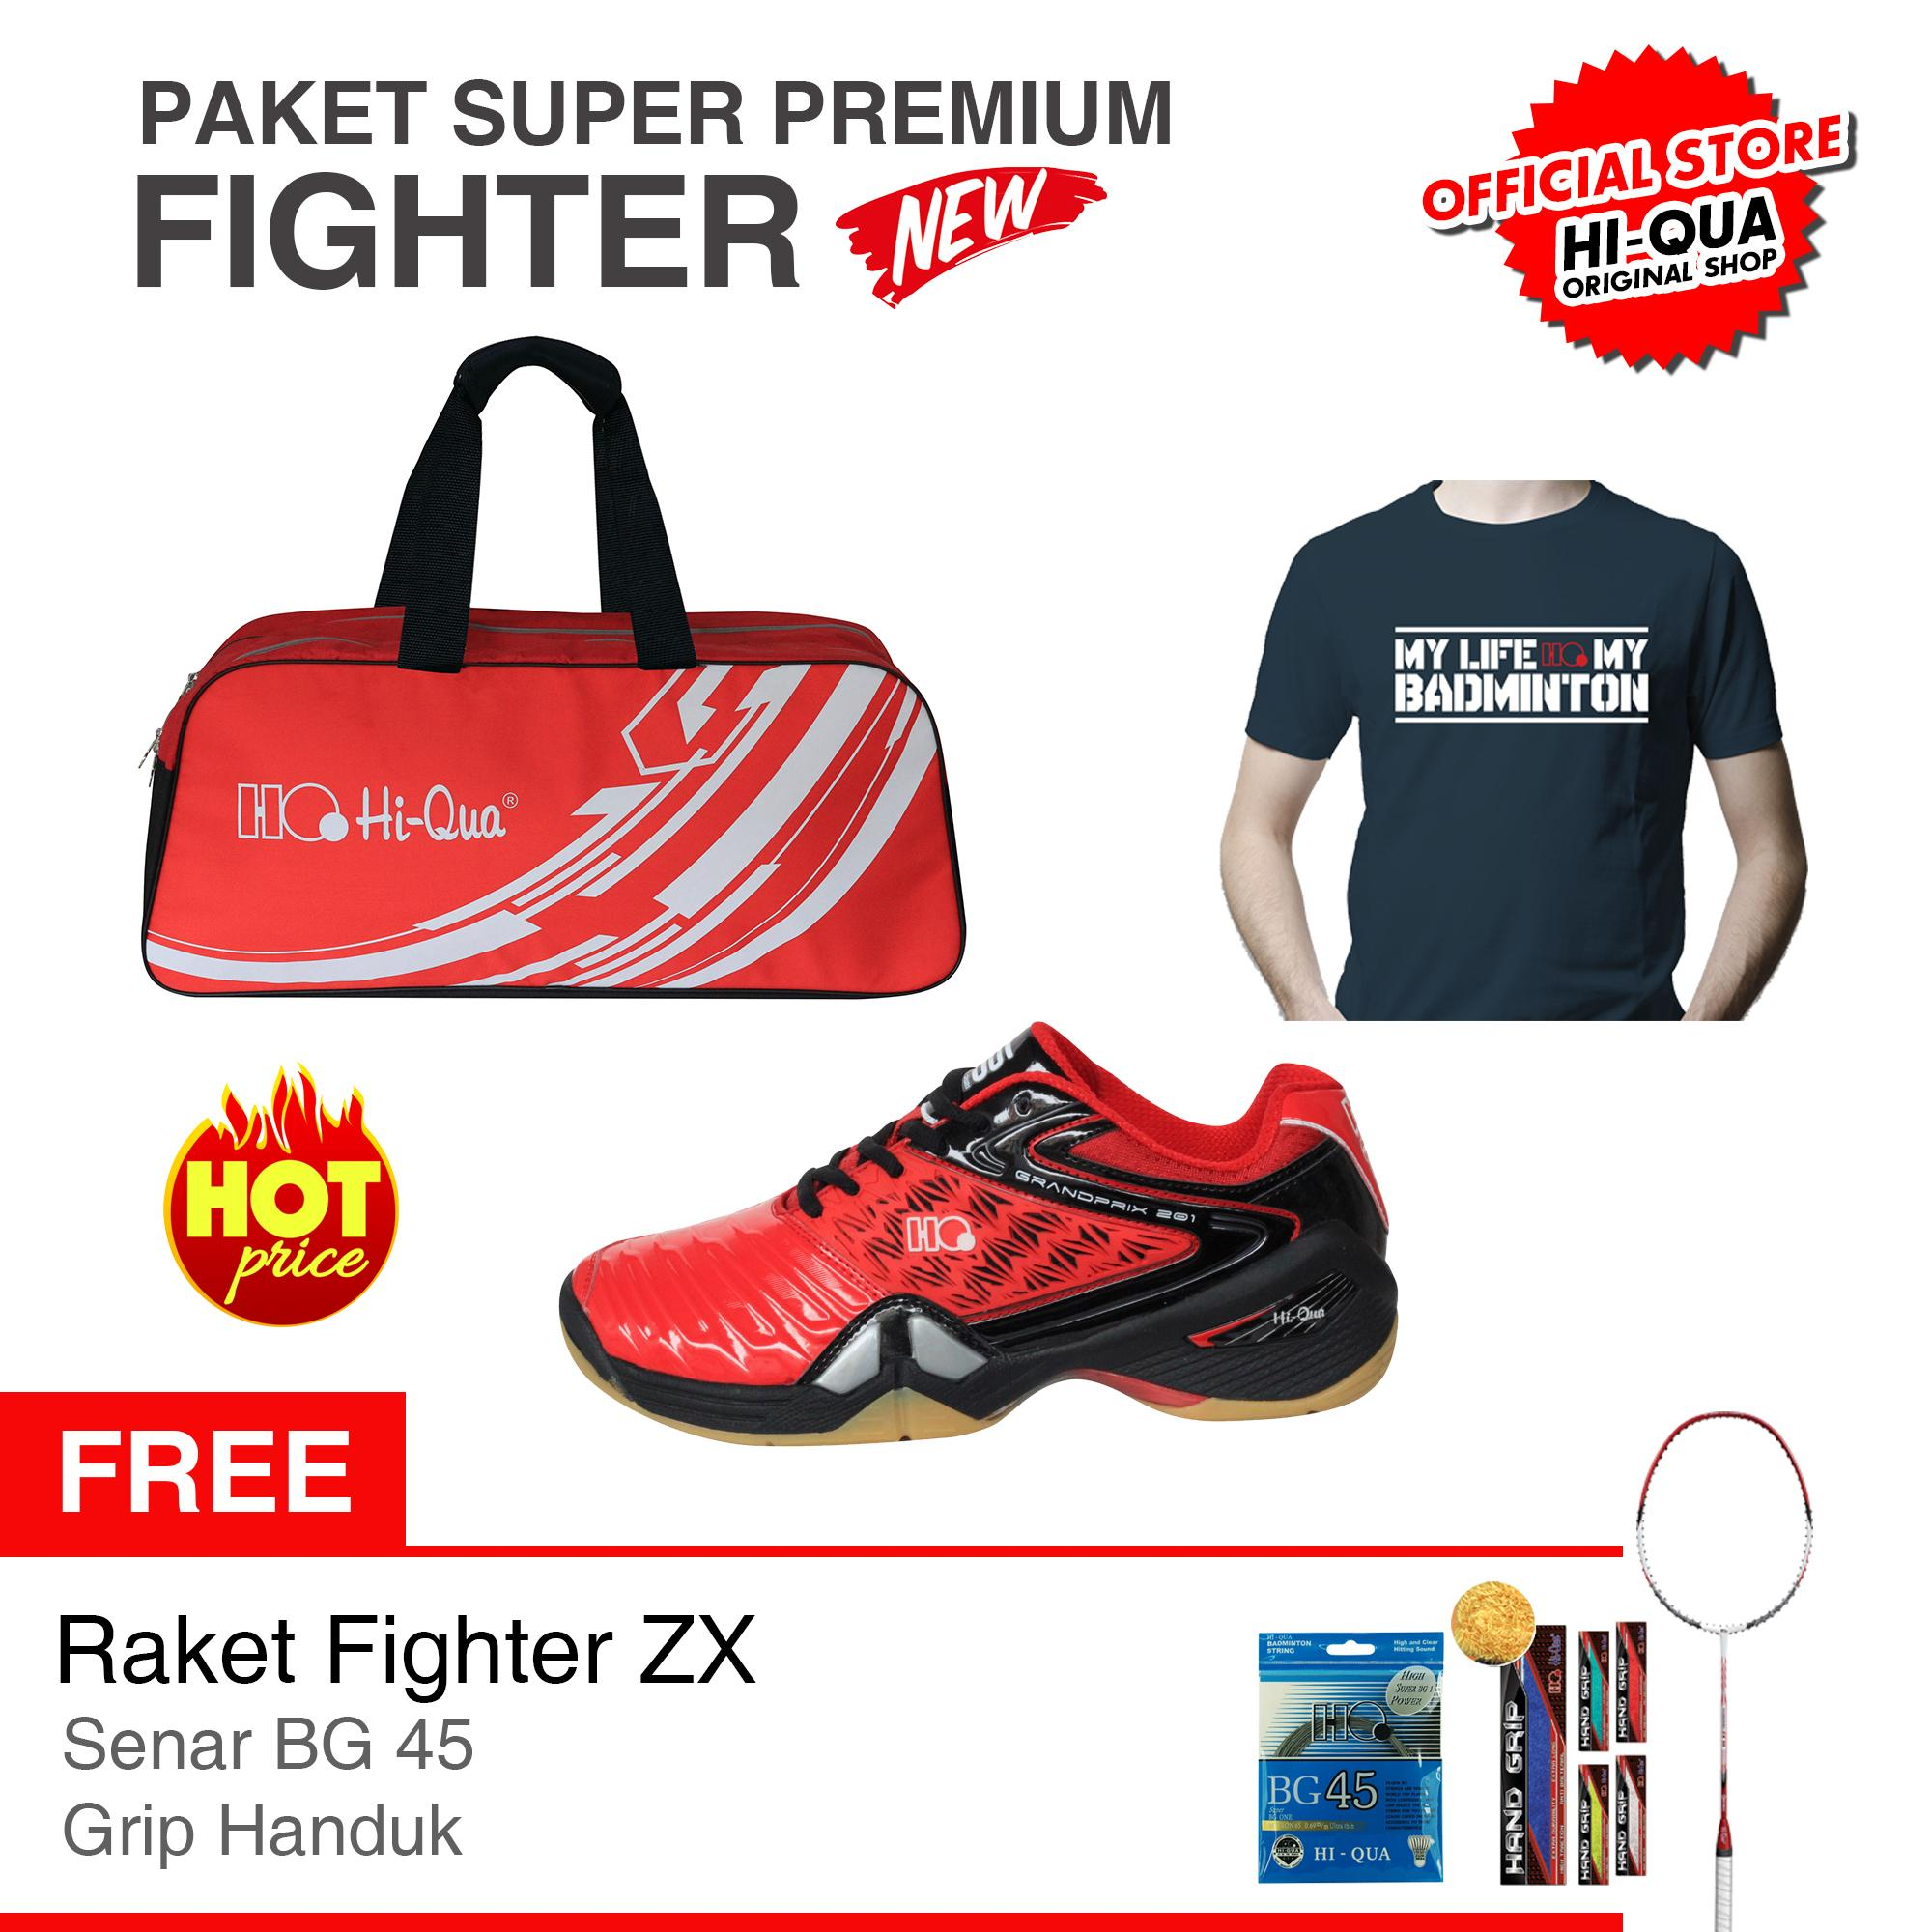 New and Fresh !! PAKET SUPER PREMIUM FIGHTER Hi-Qua !